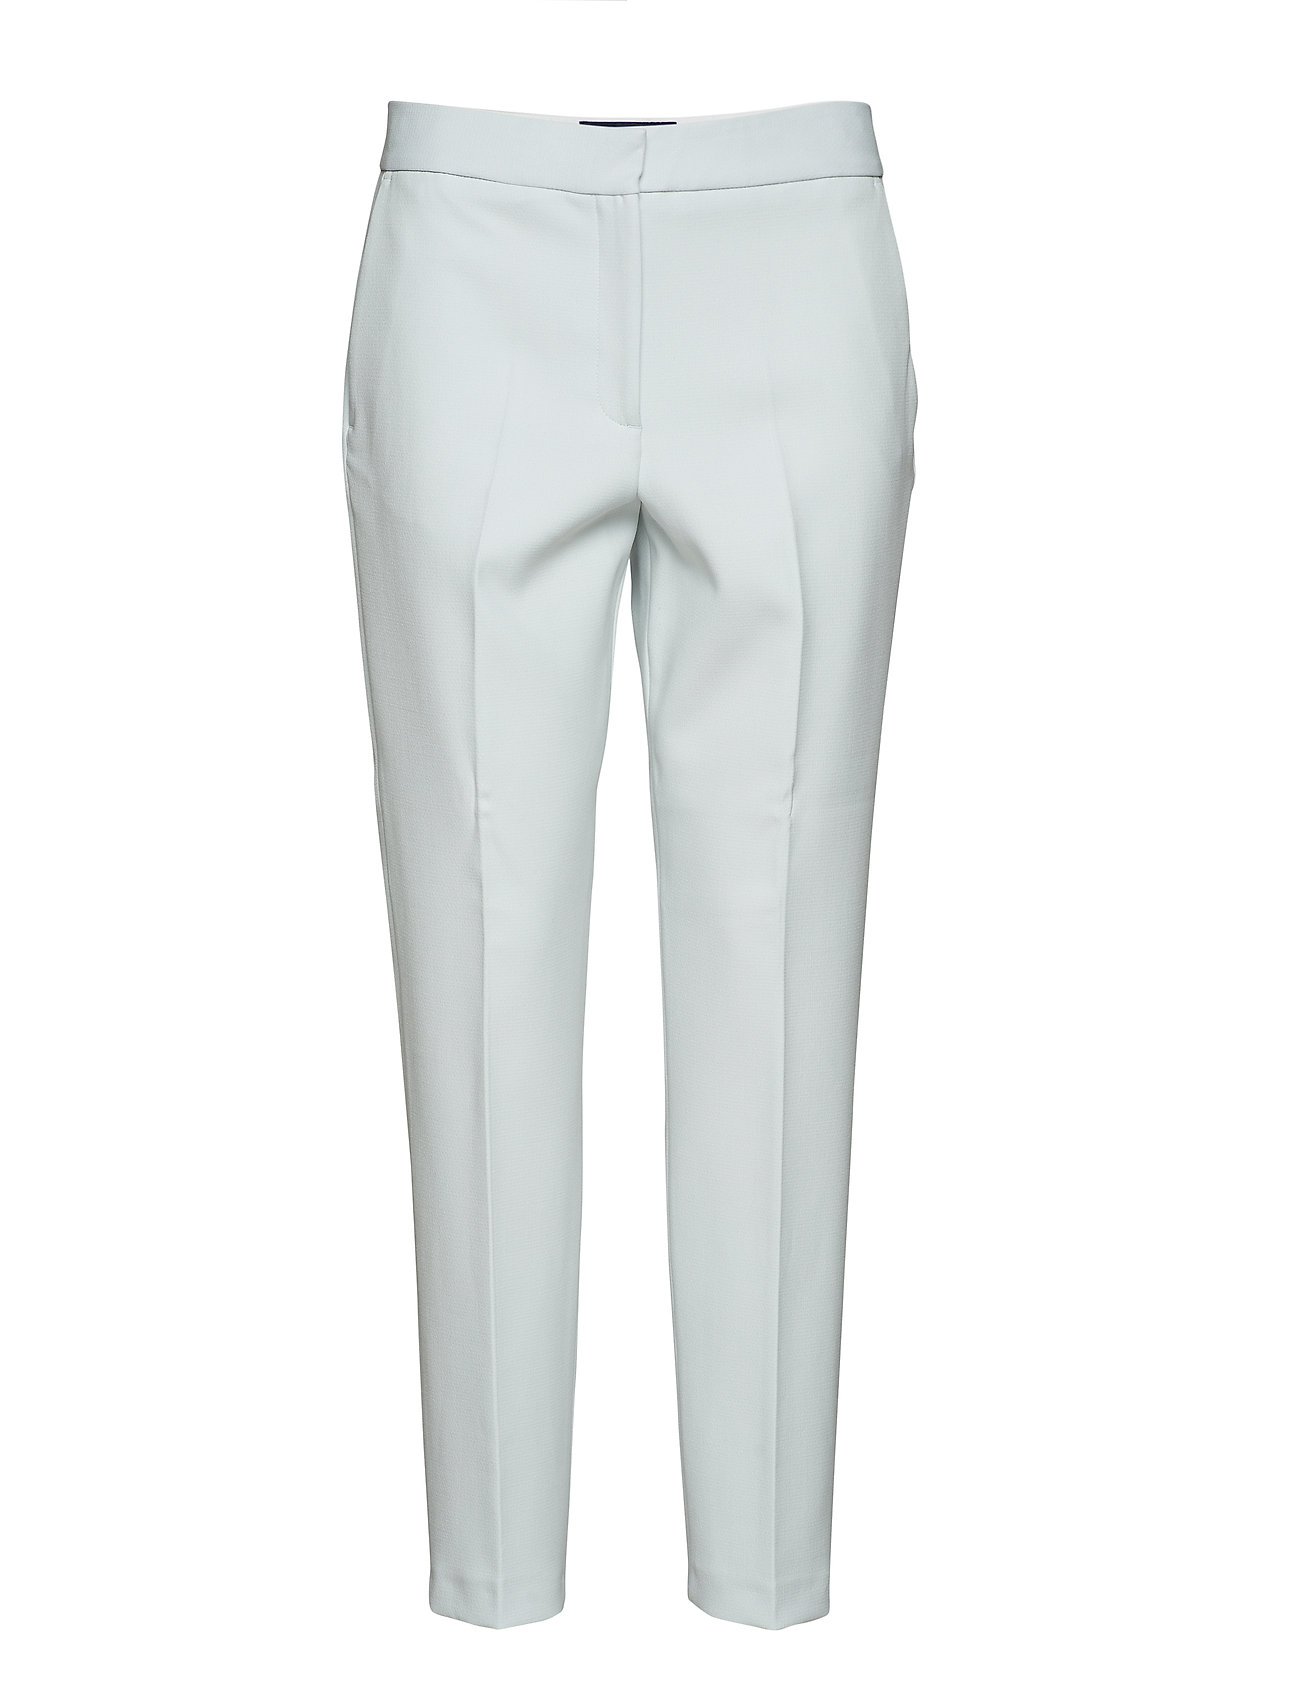 8153c7855721 Sundae Suiting Tailored Trousers